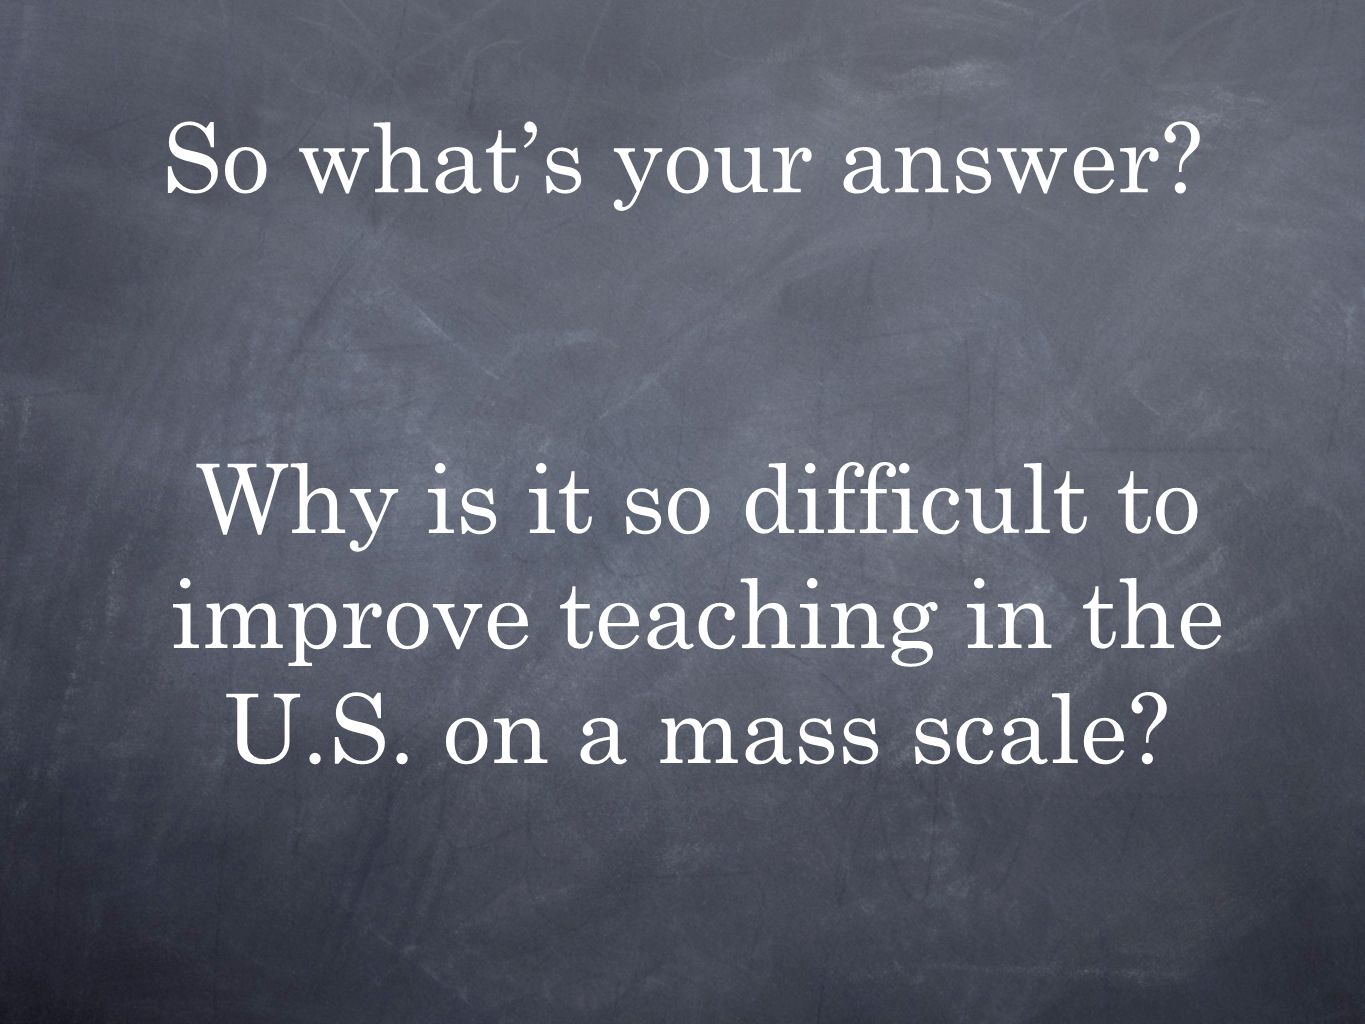 So what's your answer Why is it so difficult to improve teaching in the U.S. on a mass scale